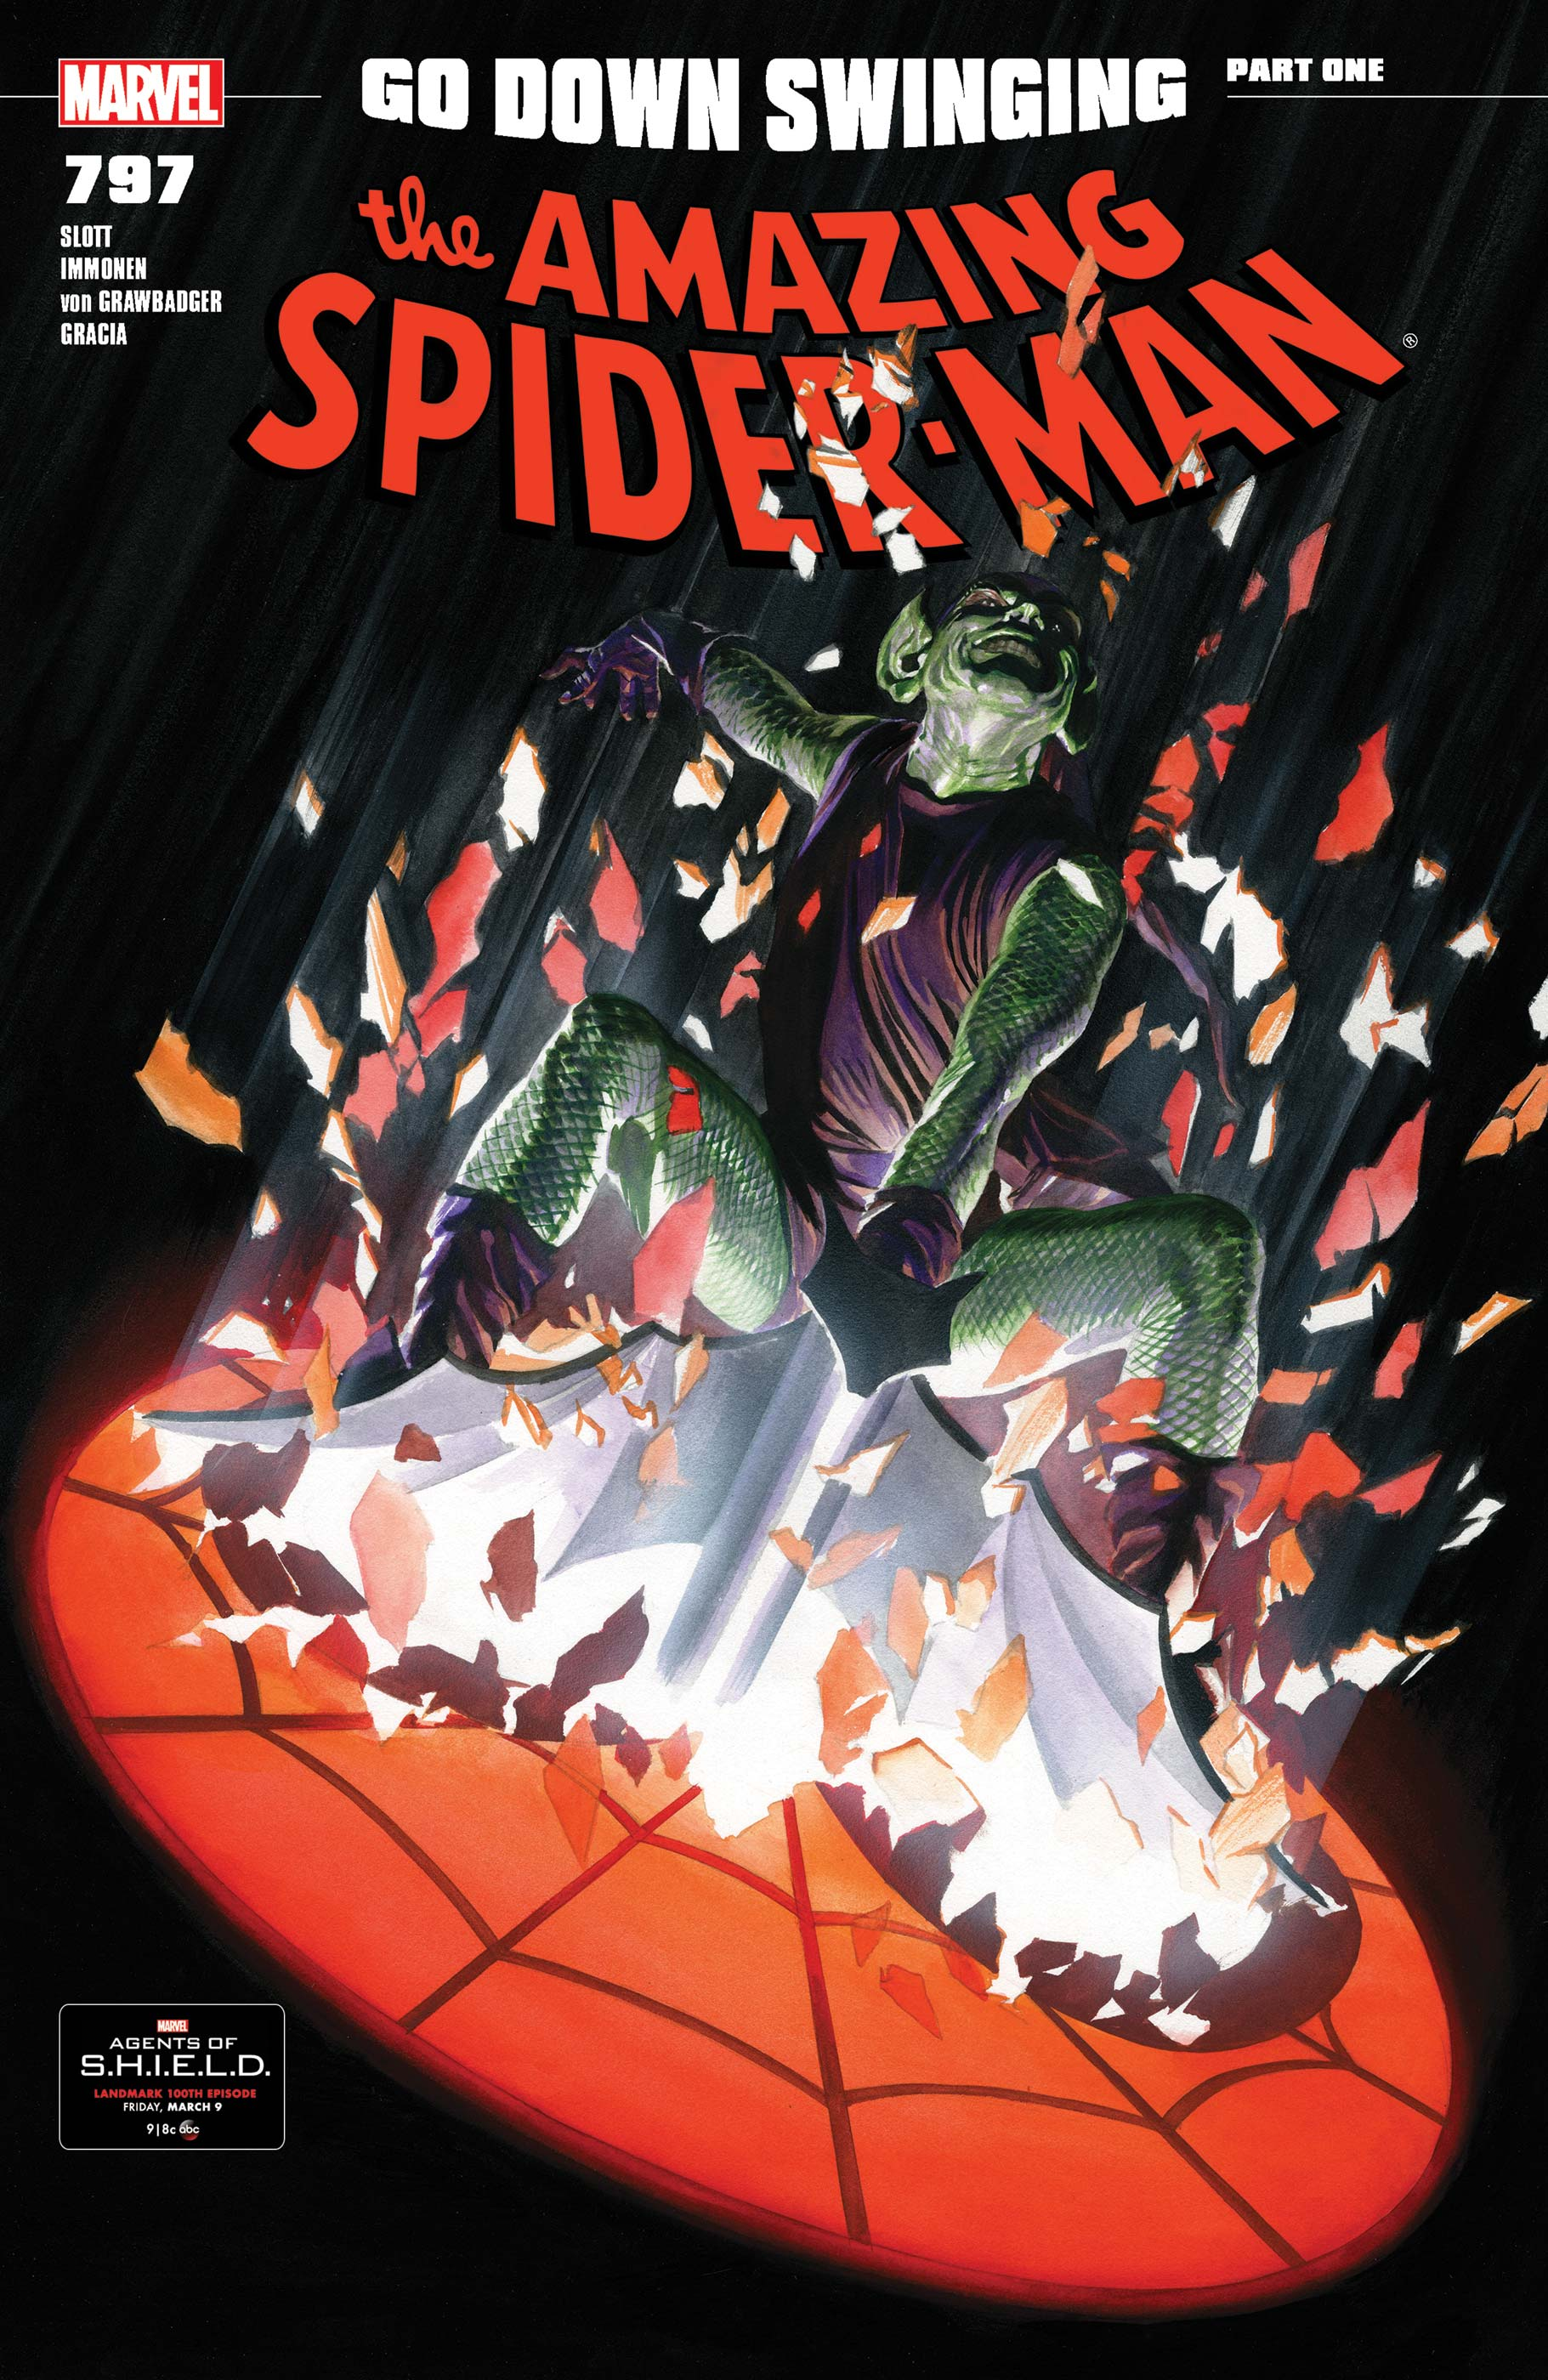 The Amazing Spider-Man (2017) #797